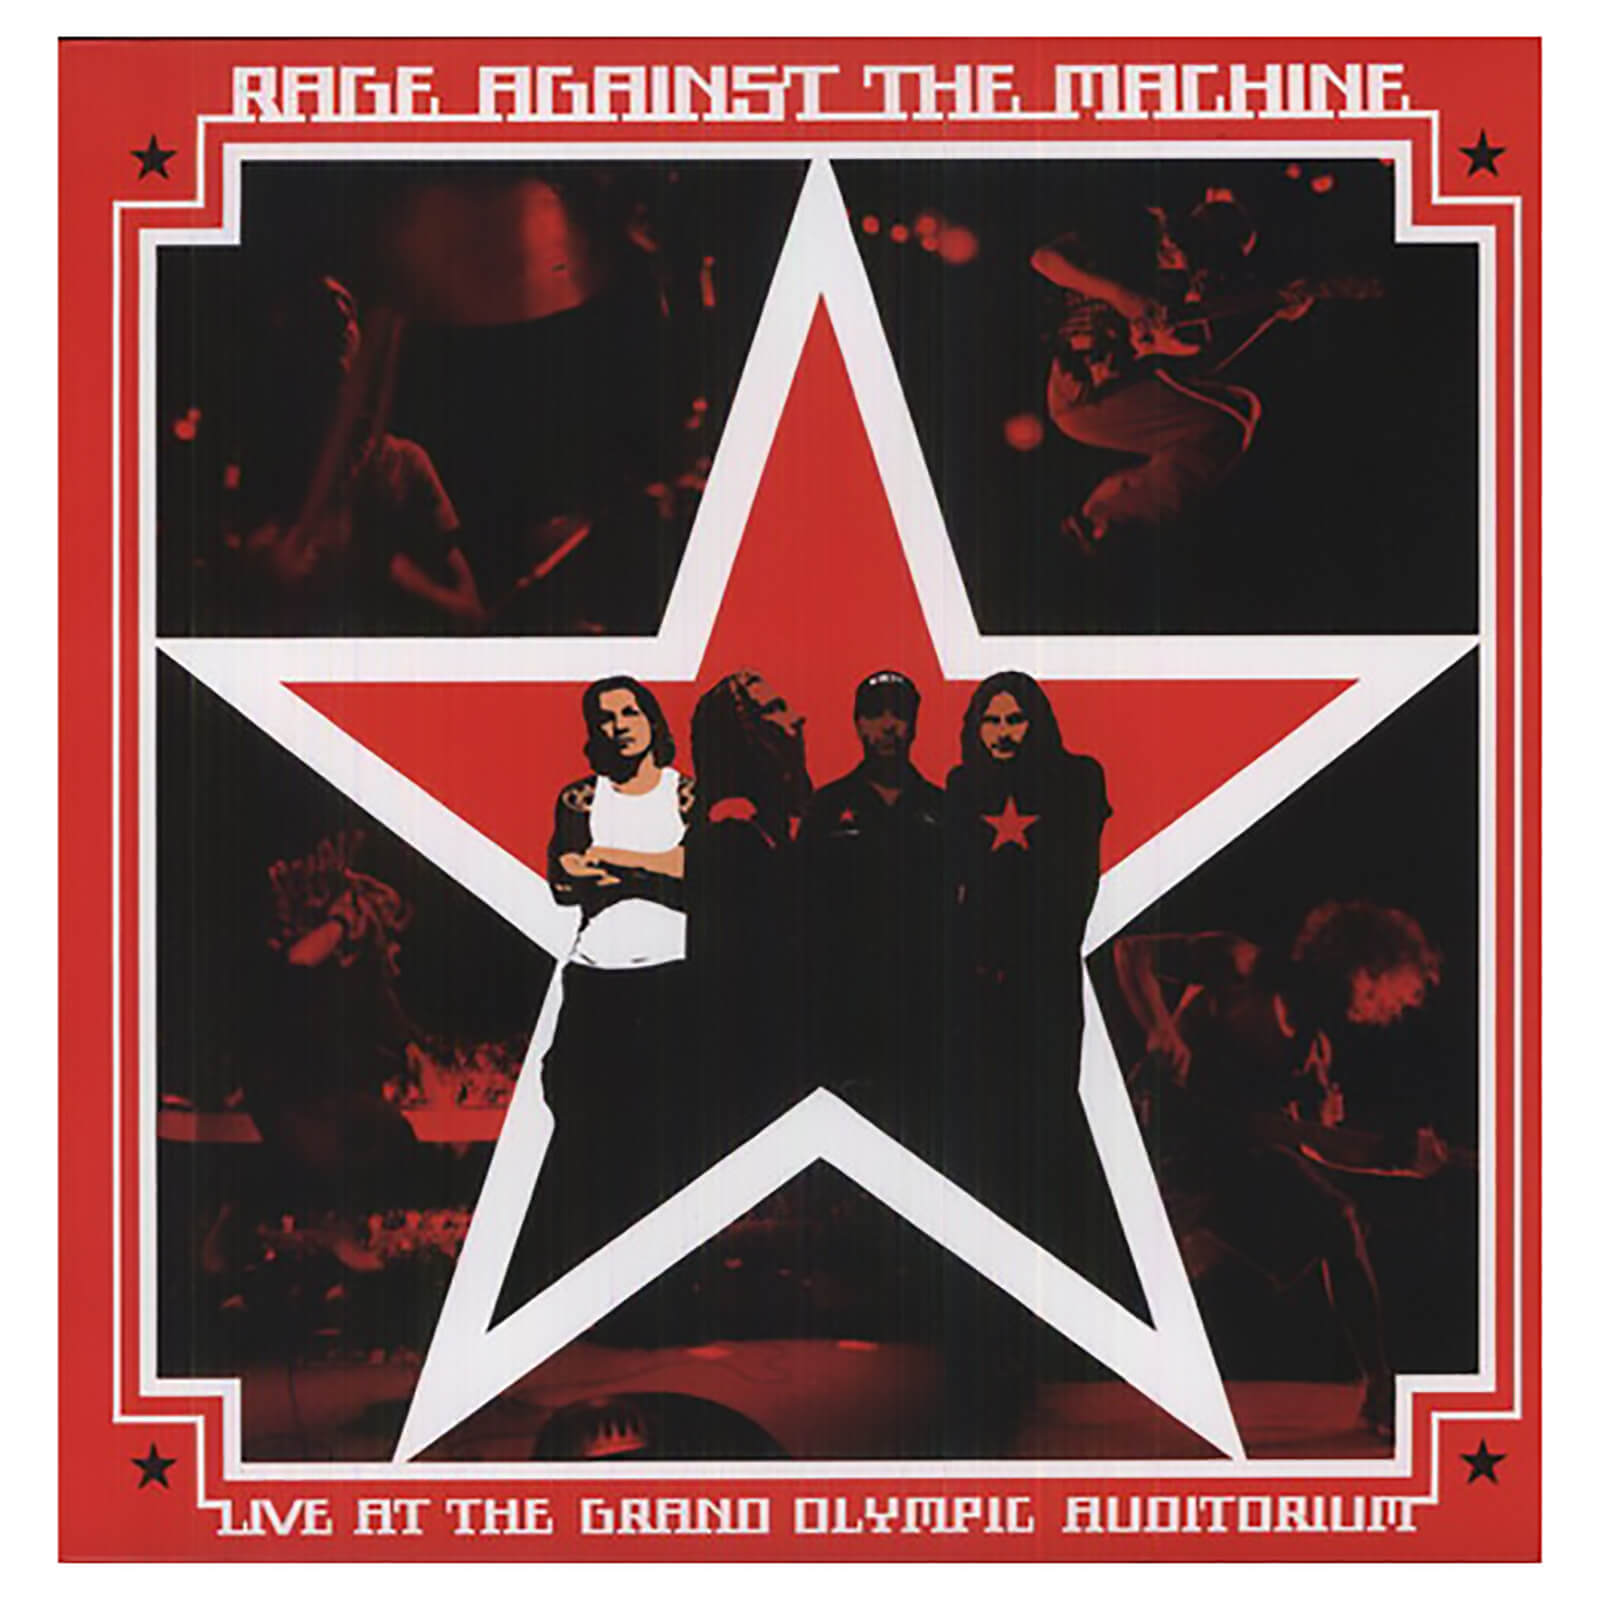 Rage Against The Machine - Live At The Grand Olympic Auditorium - Vinyl